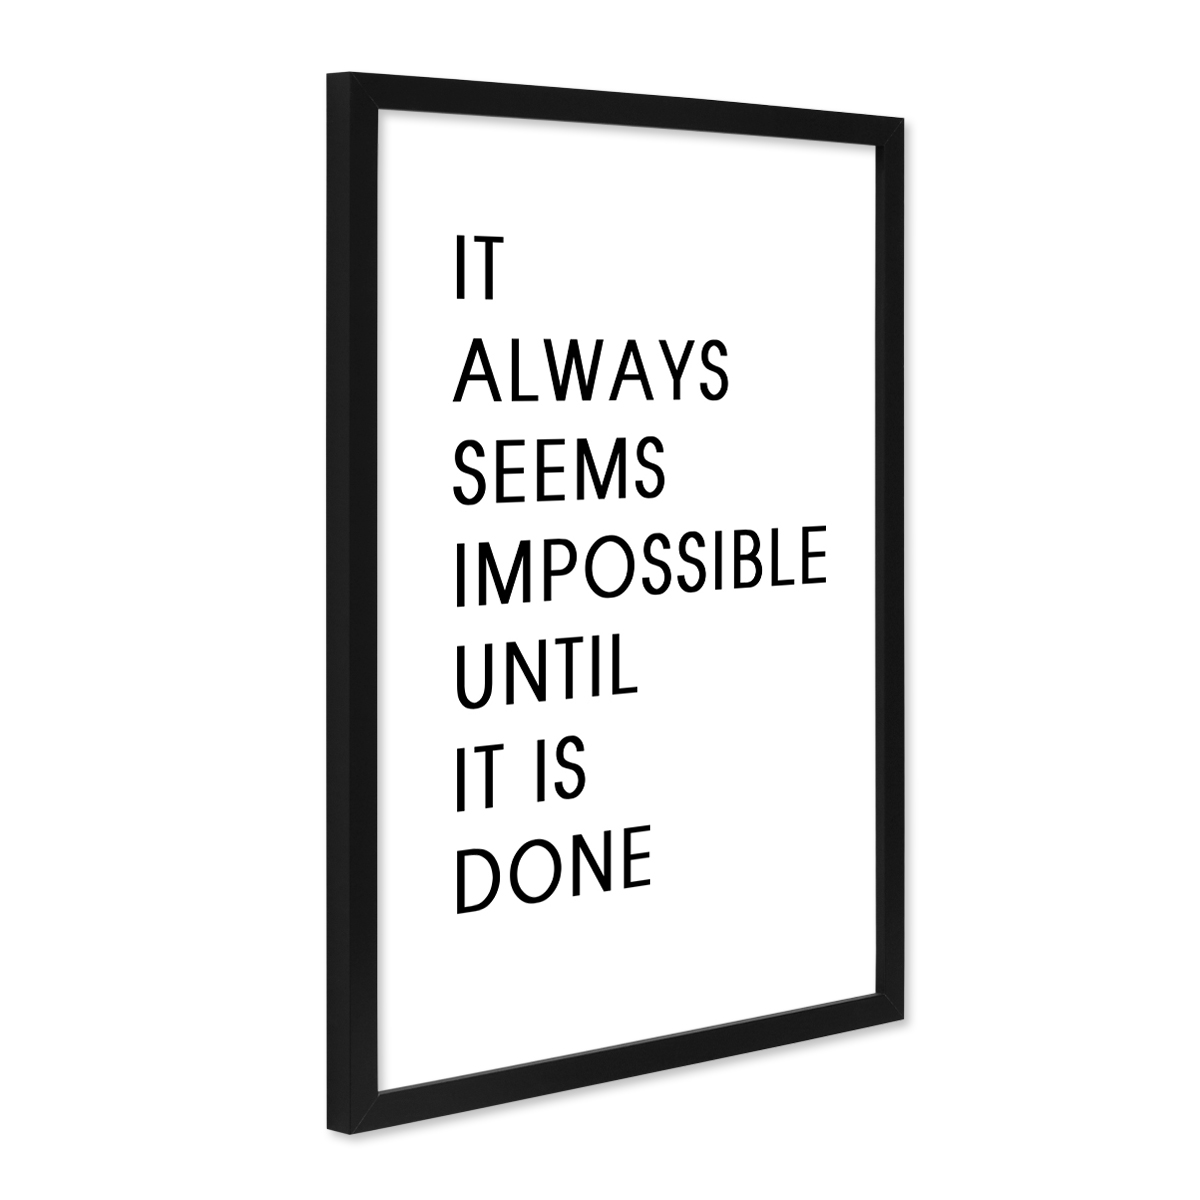 poster 39 impossible 39 30x40 cm schwarz weiss motiv spruch. Black Bedroom Furniture Sets. Home Design Ideas